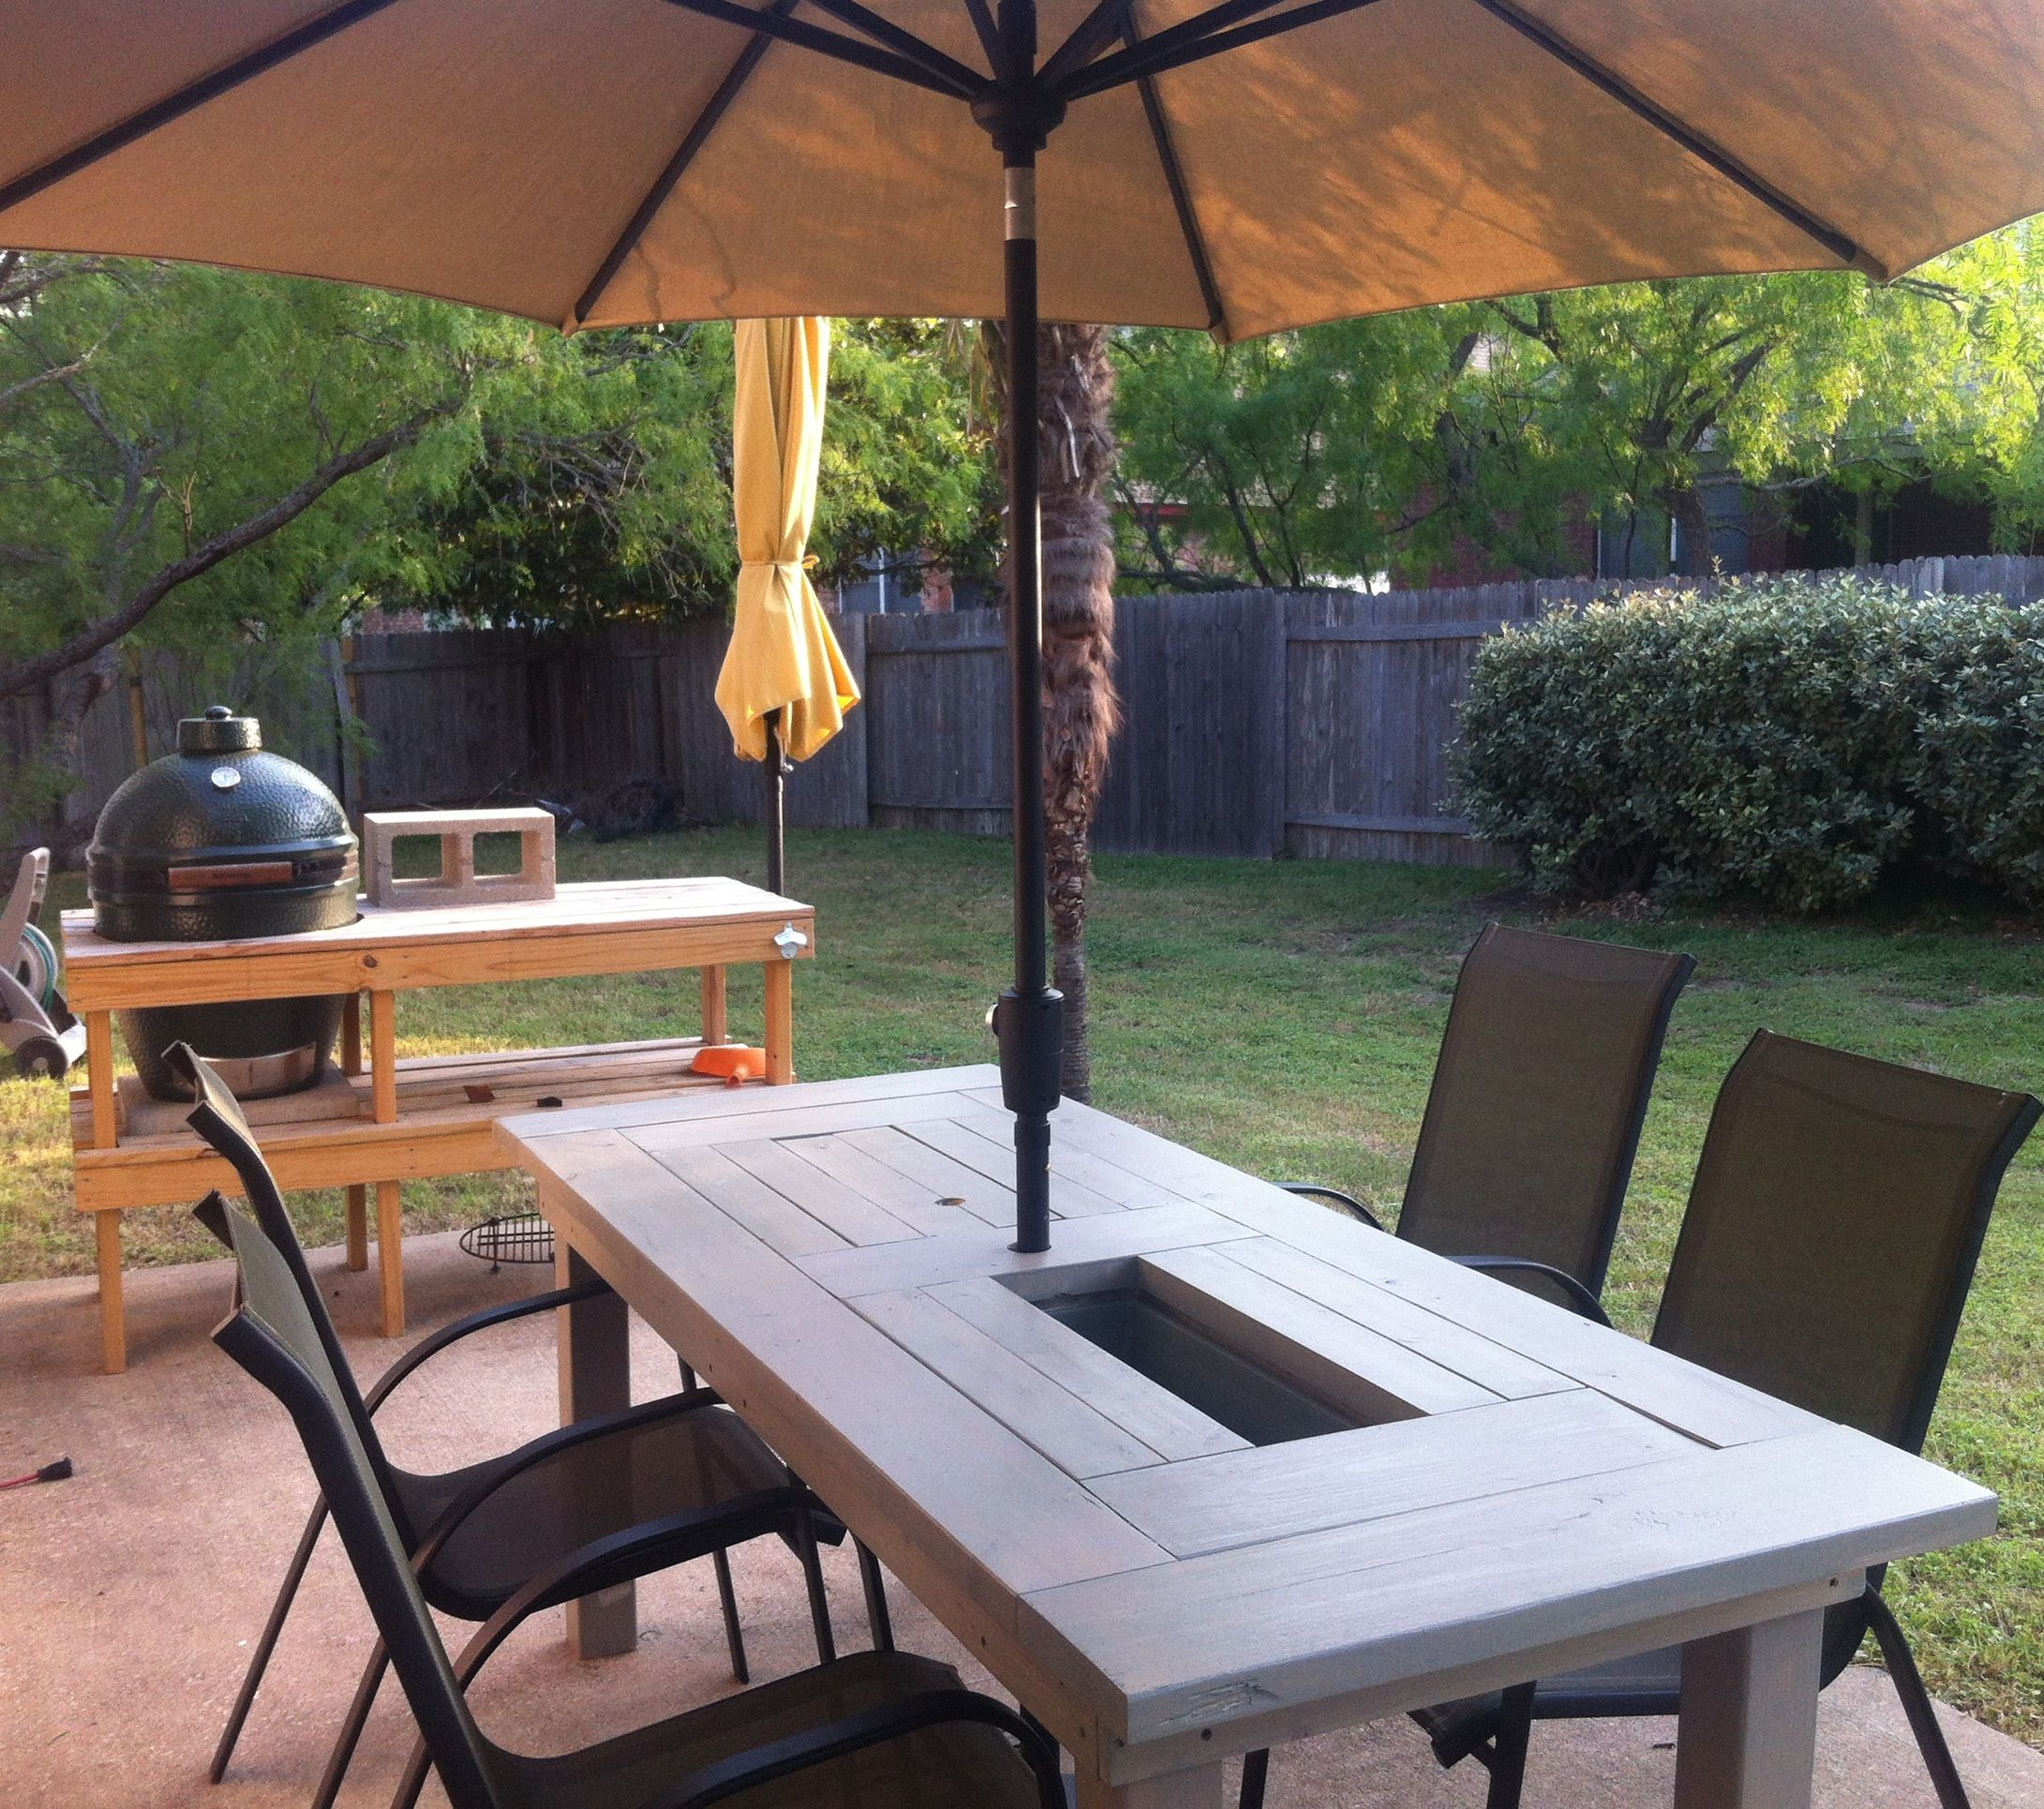 Patio Table With Built-in Beer Wine Coolers